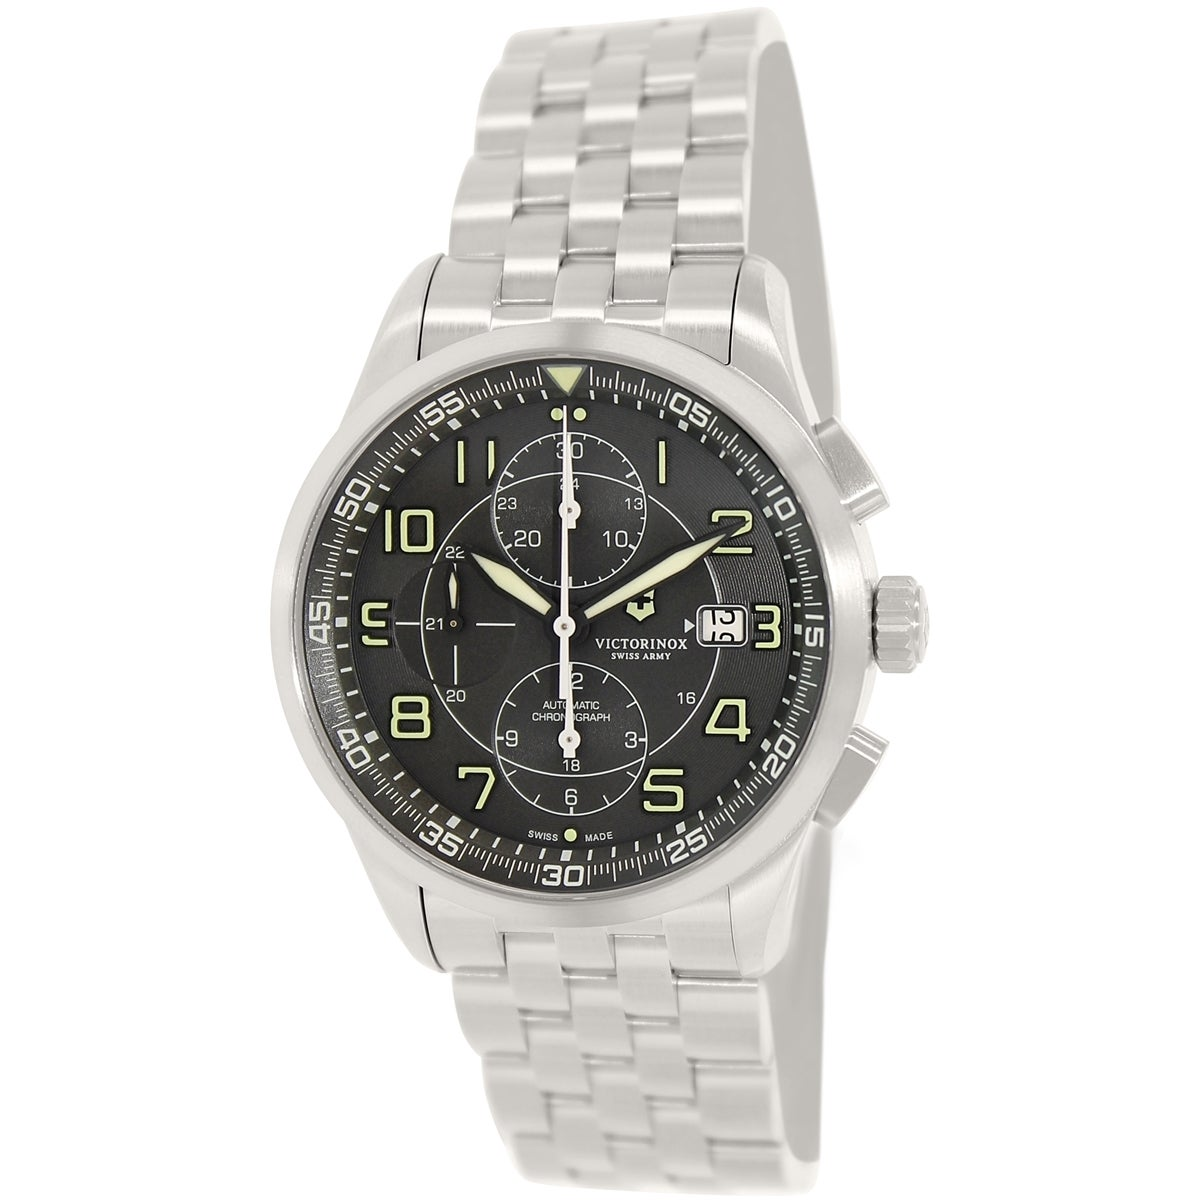 79da046fbb2 Shop Victorinox Swiss Army Men s Airboss Stainless Steel Swiss Automatic  Watch - silver - Free Shipping Today - Overstock - 9830166